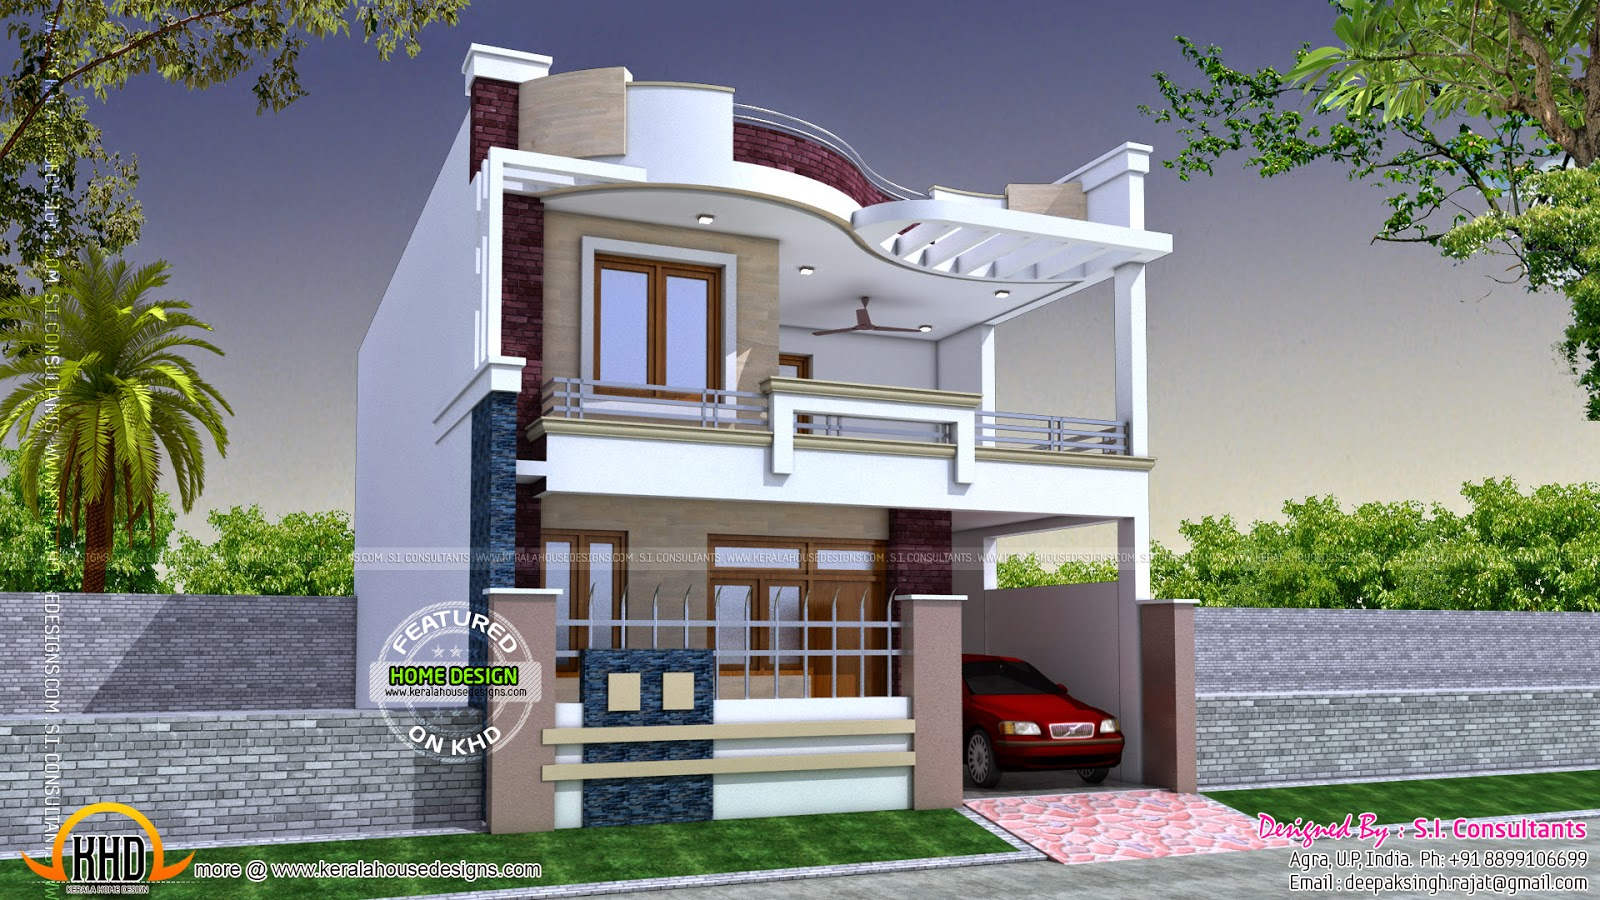 Modern indian home design kerala home design and floor plans for Design my home